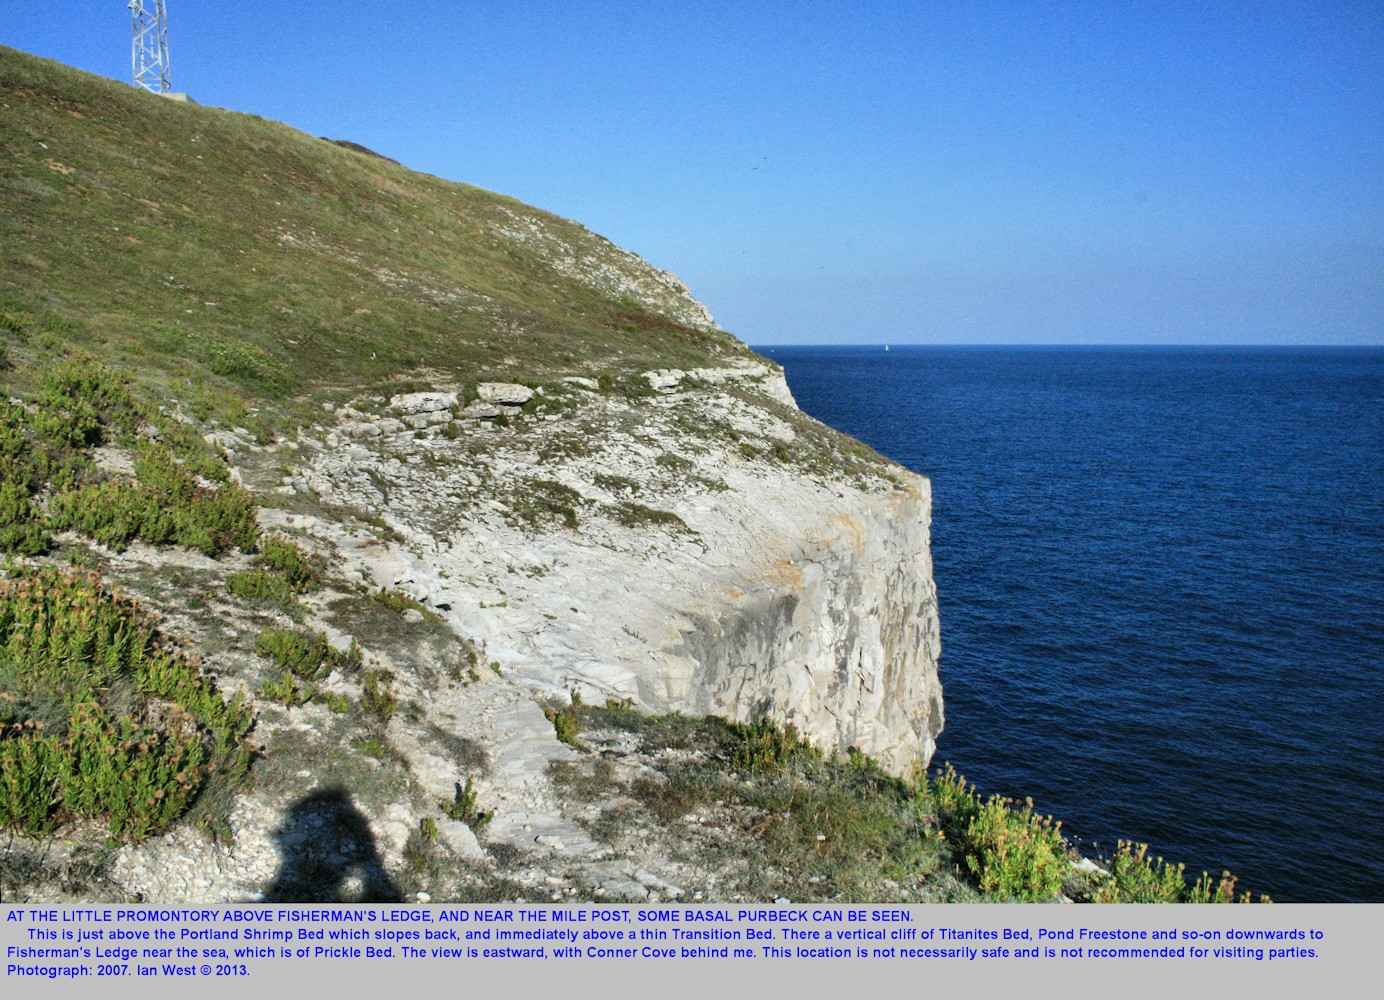 Basal Purbeck limestones, just east of Fisherman's Ledge promontory and near the mile post indicator, west of Anvil Point, near Swanage, Dorset, Jurassic Coast, 2007